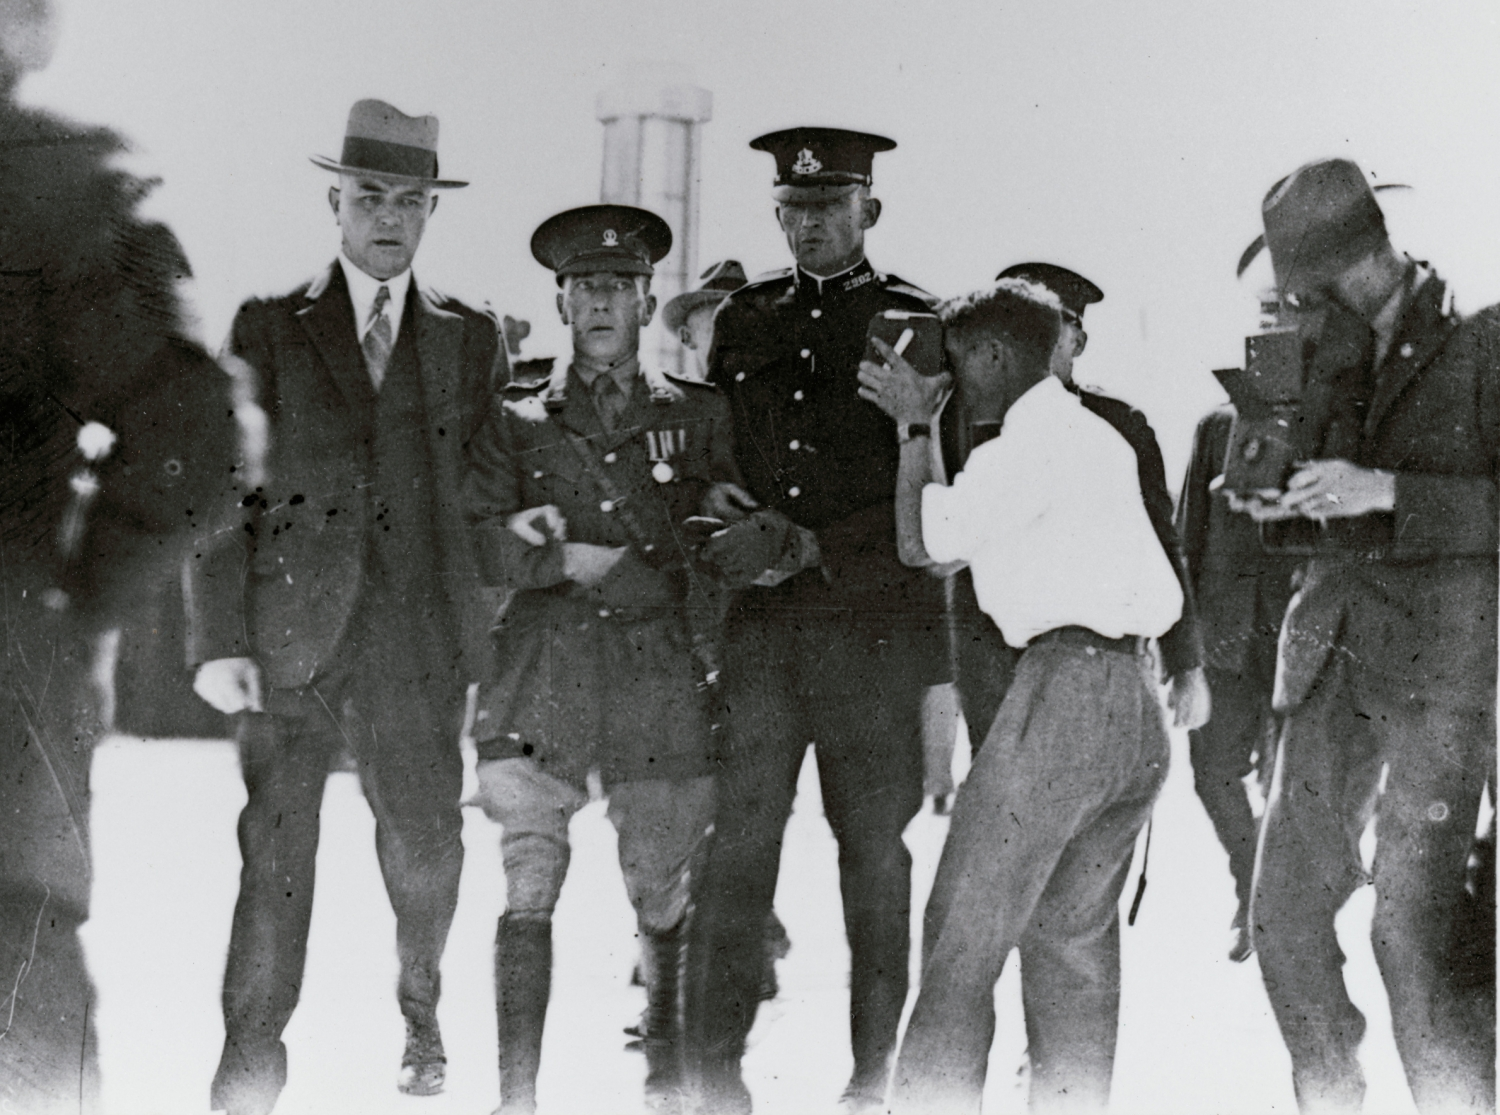 Slightly faded around edges, a black and white photo of police holding man in uniform, with photographer in action taking photos to right.